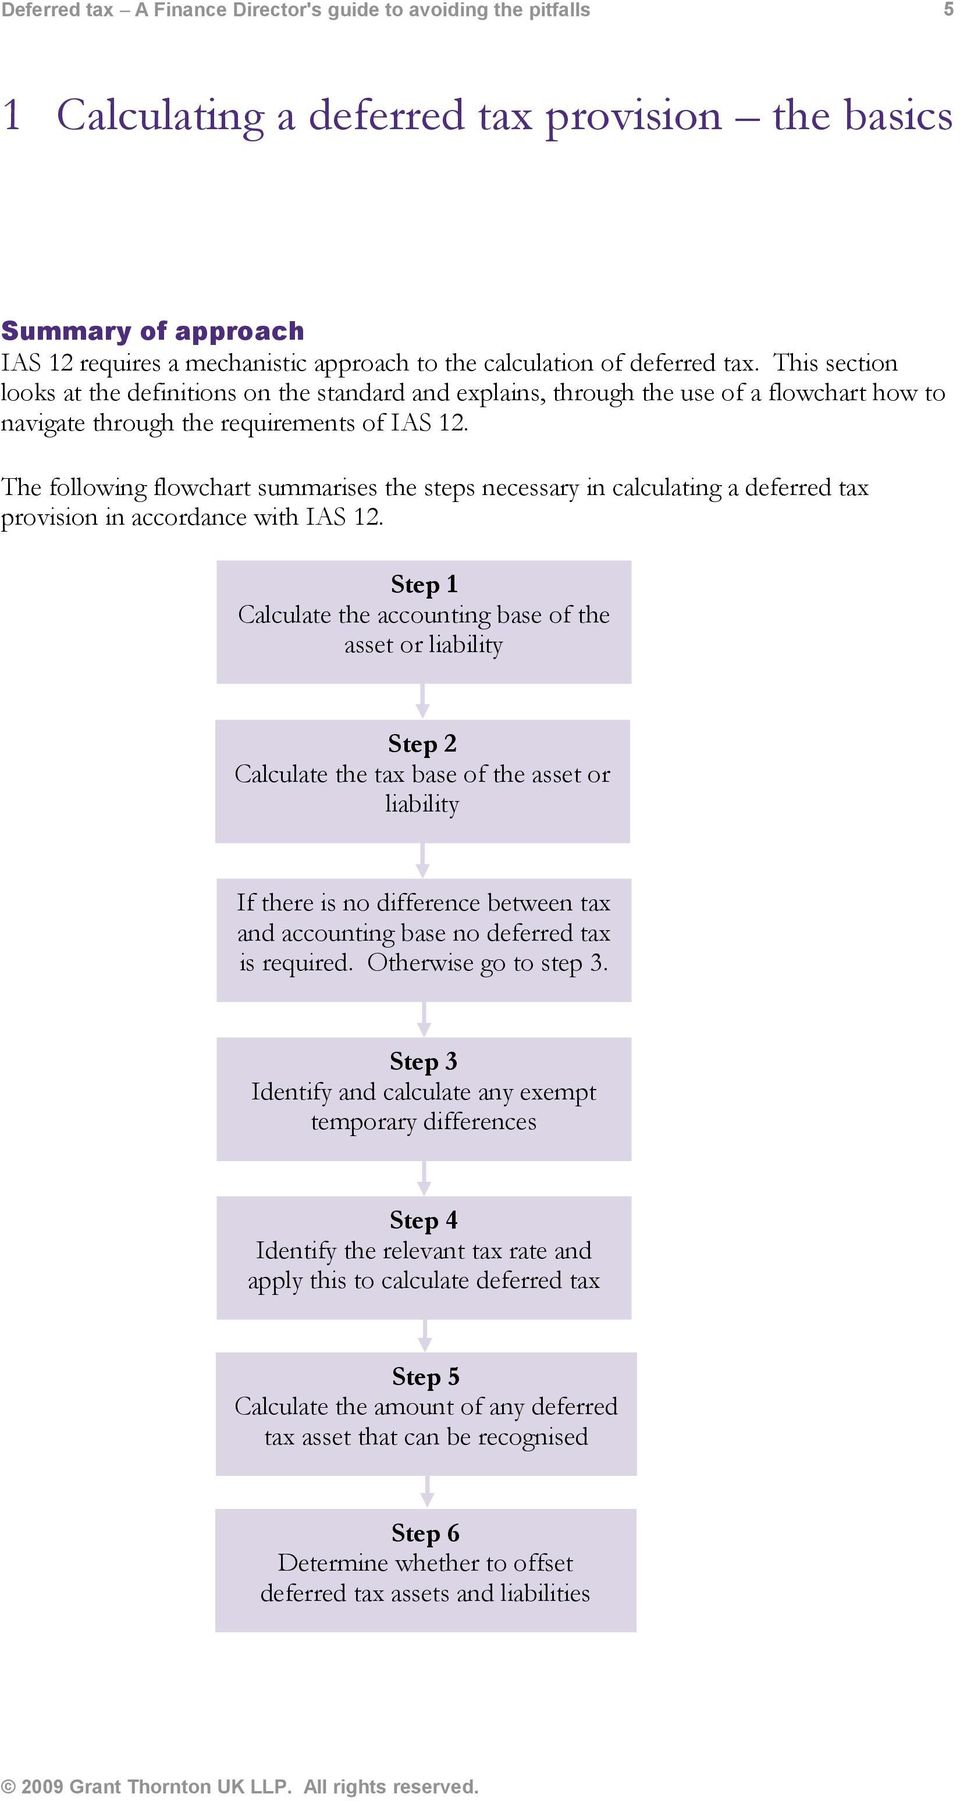 The following flowchart summarises the steps necessary in calculating a deferred tax provision in accordance with IAS 12.